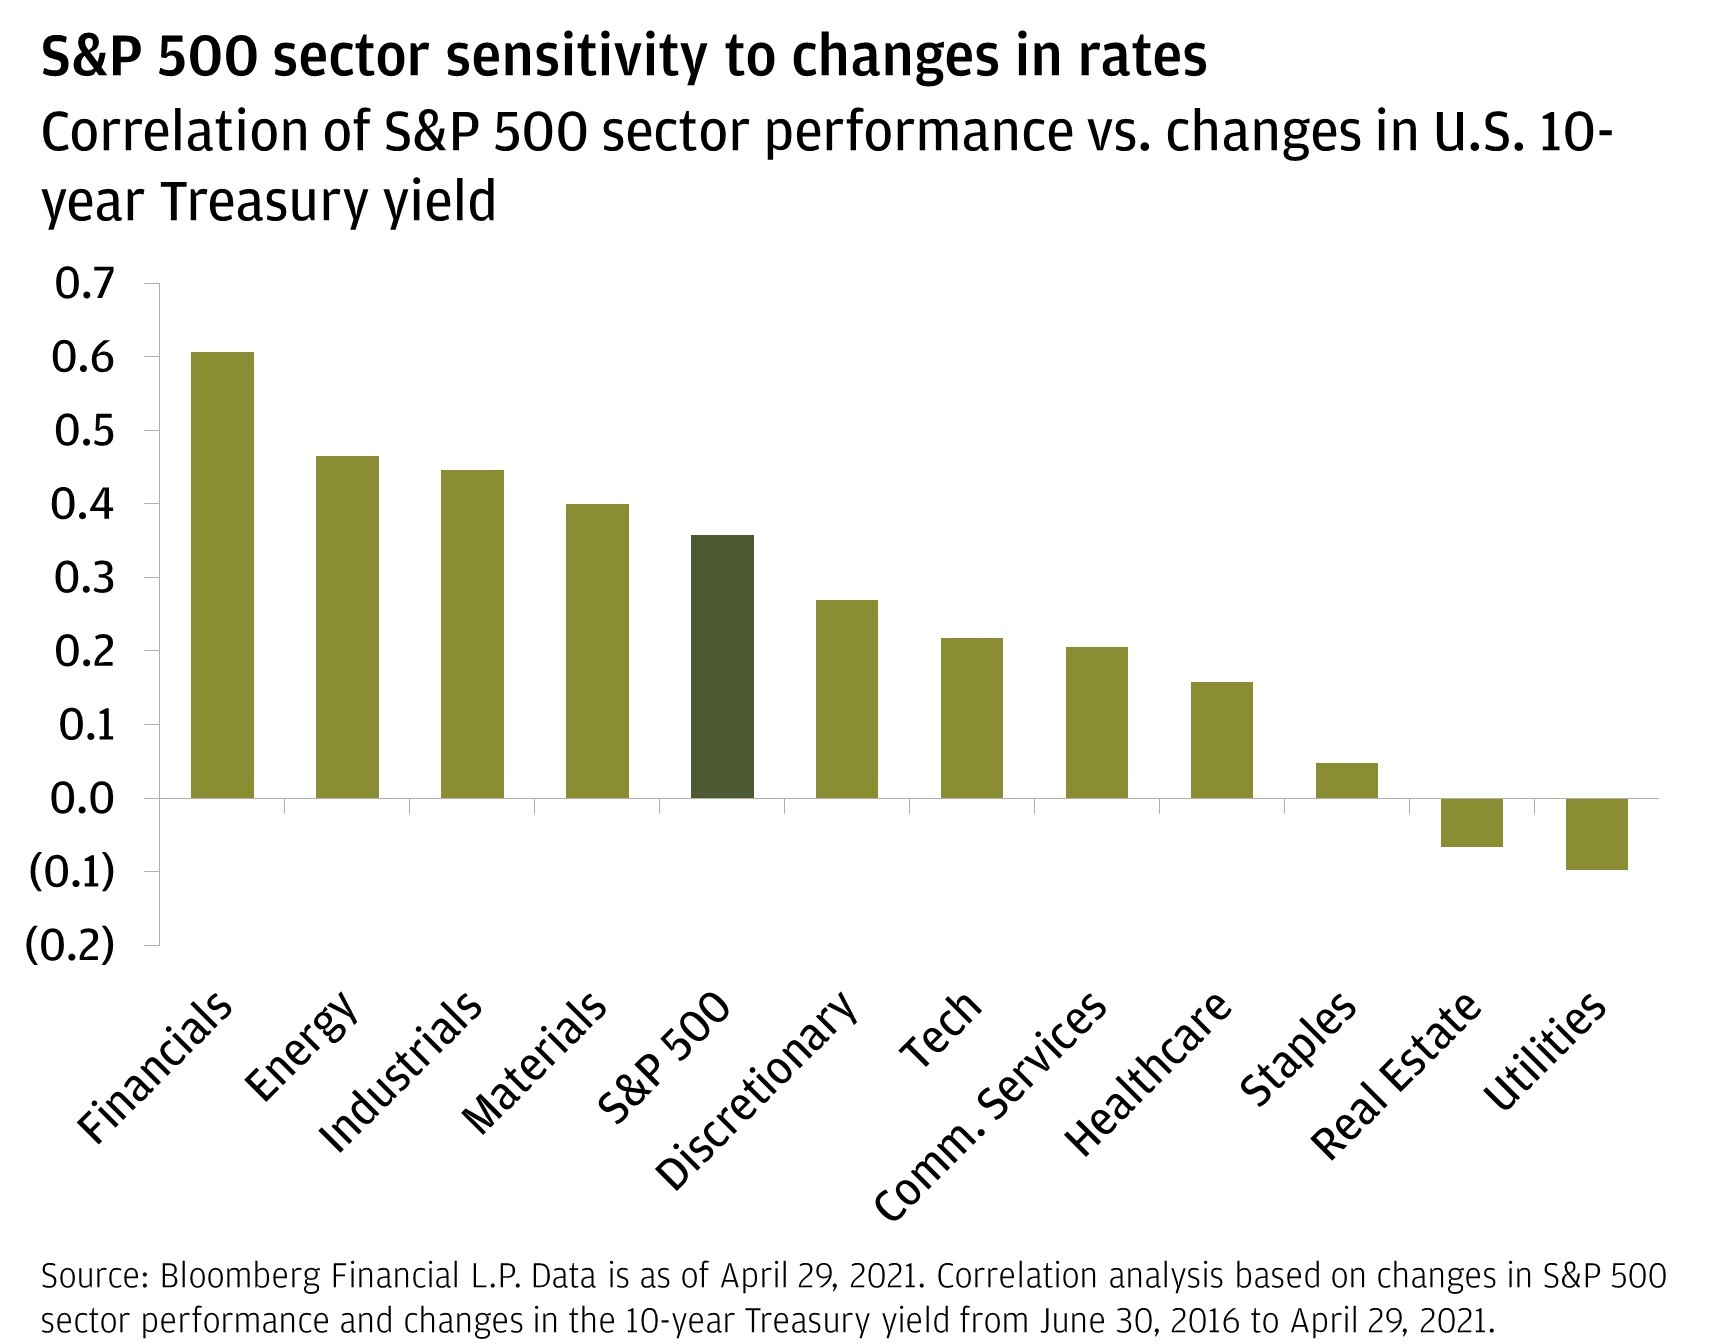 Chart 4: S&P 500 sector sensitivity to changes in rates.